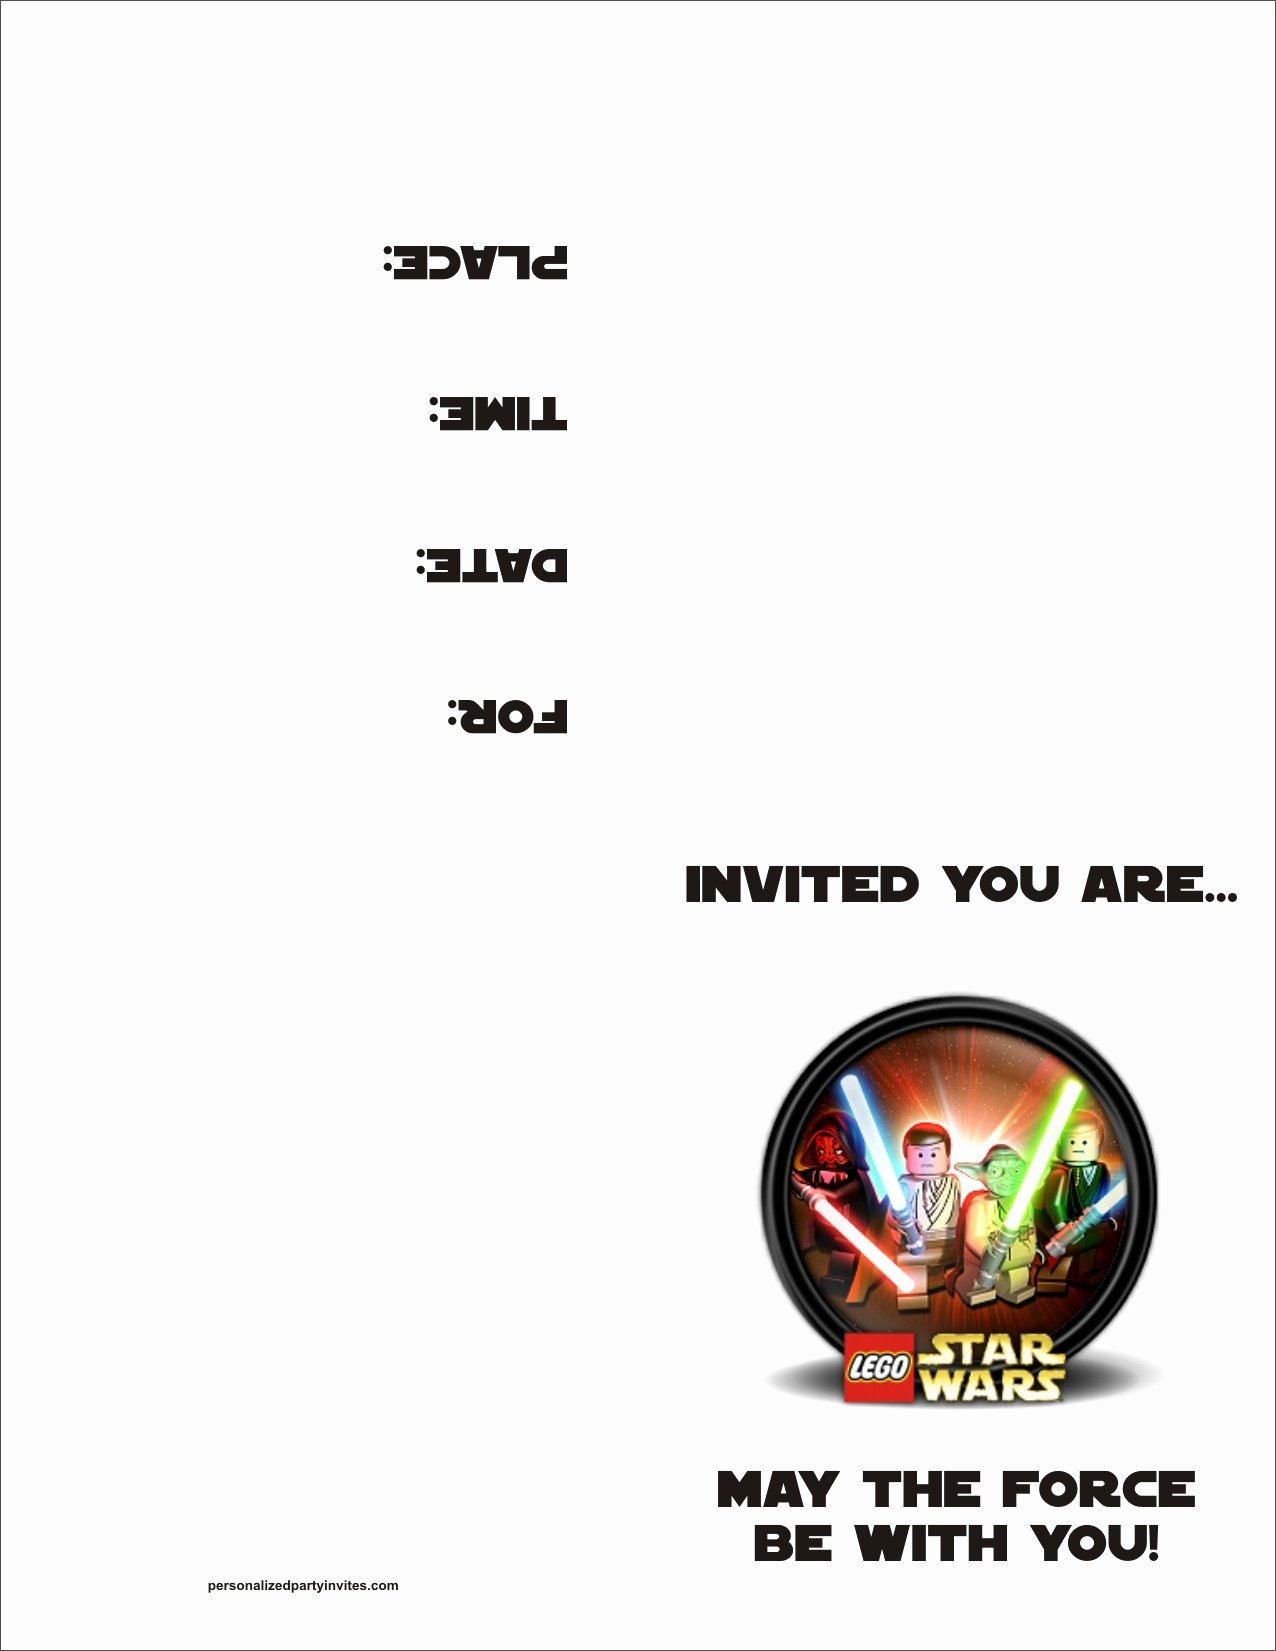 Star Wars Invitations Free Printable Awesome Lego Star Wars Free Printable Birthday Party Invitation